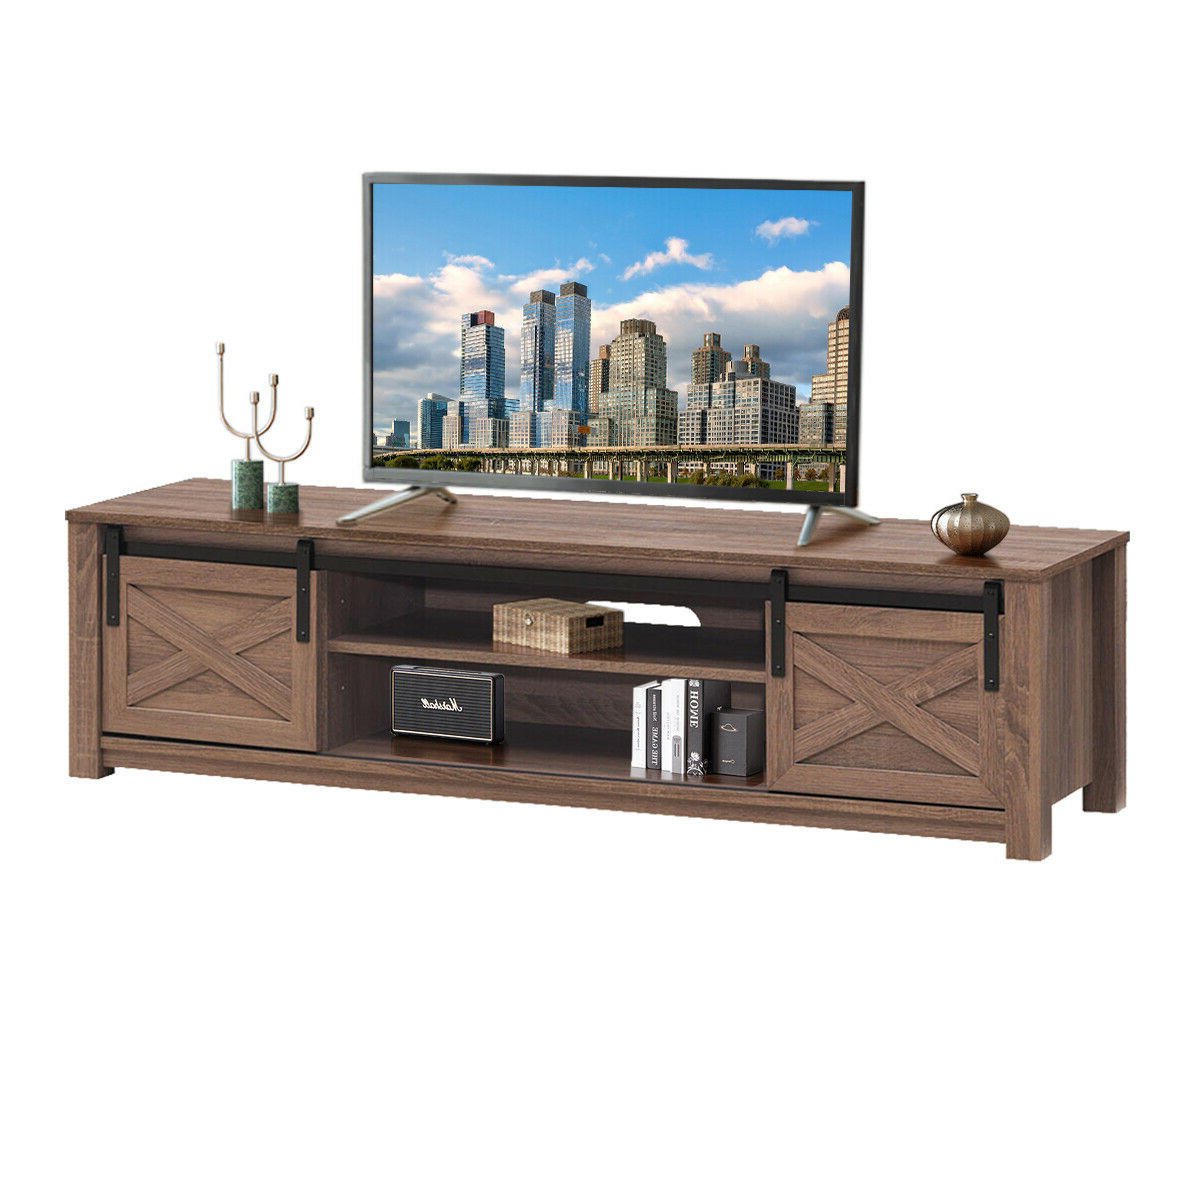 """Latest Gymax Sliding Barn Door Tv Stand For Tv's Up To 65 Throughout Wolla Tv Stands For Tvs Up To 65"""" (View 7 of 25)"""